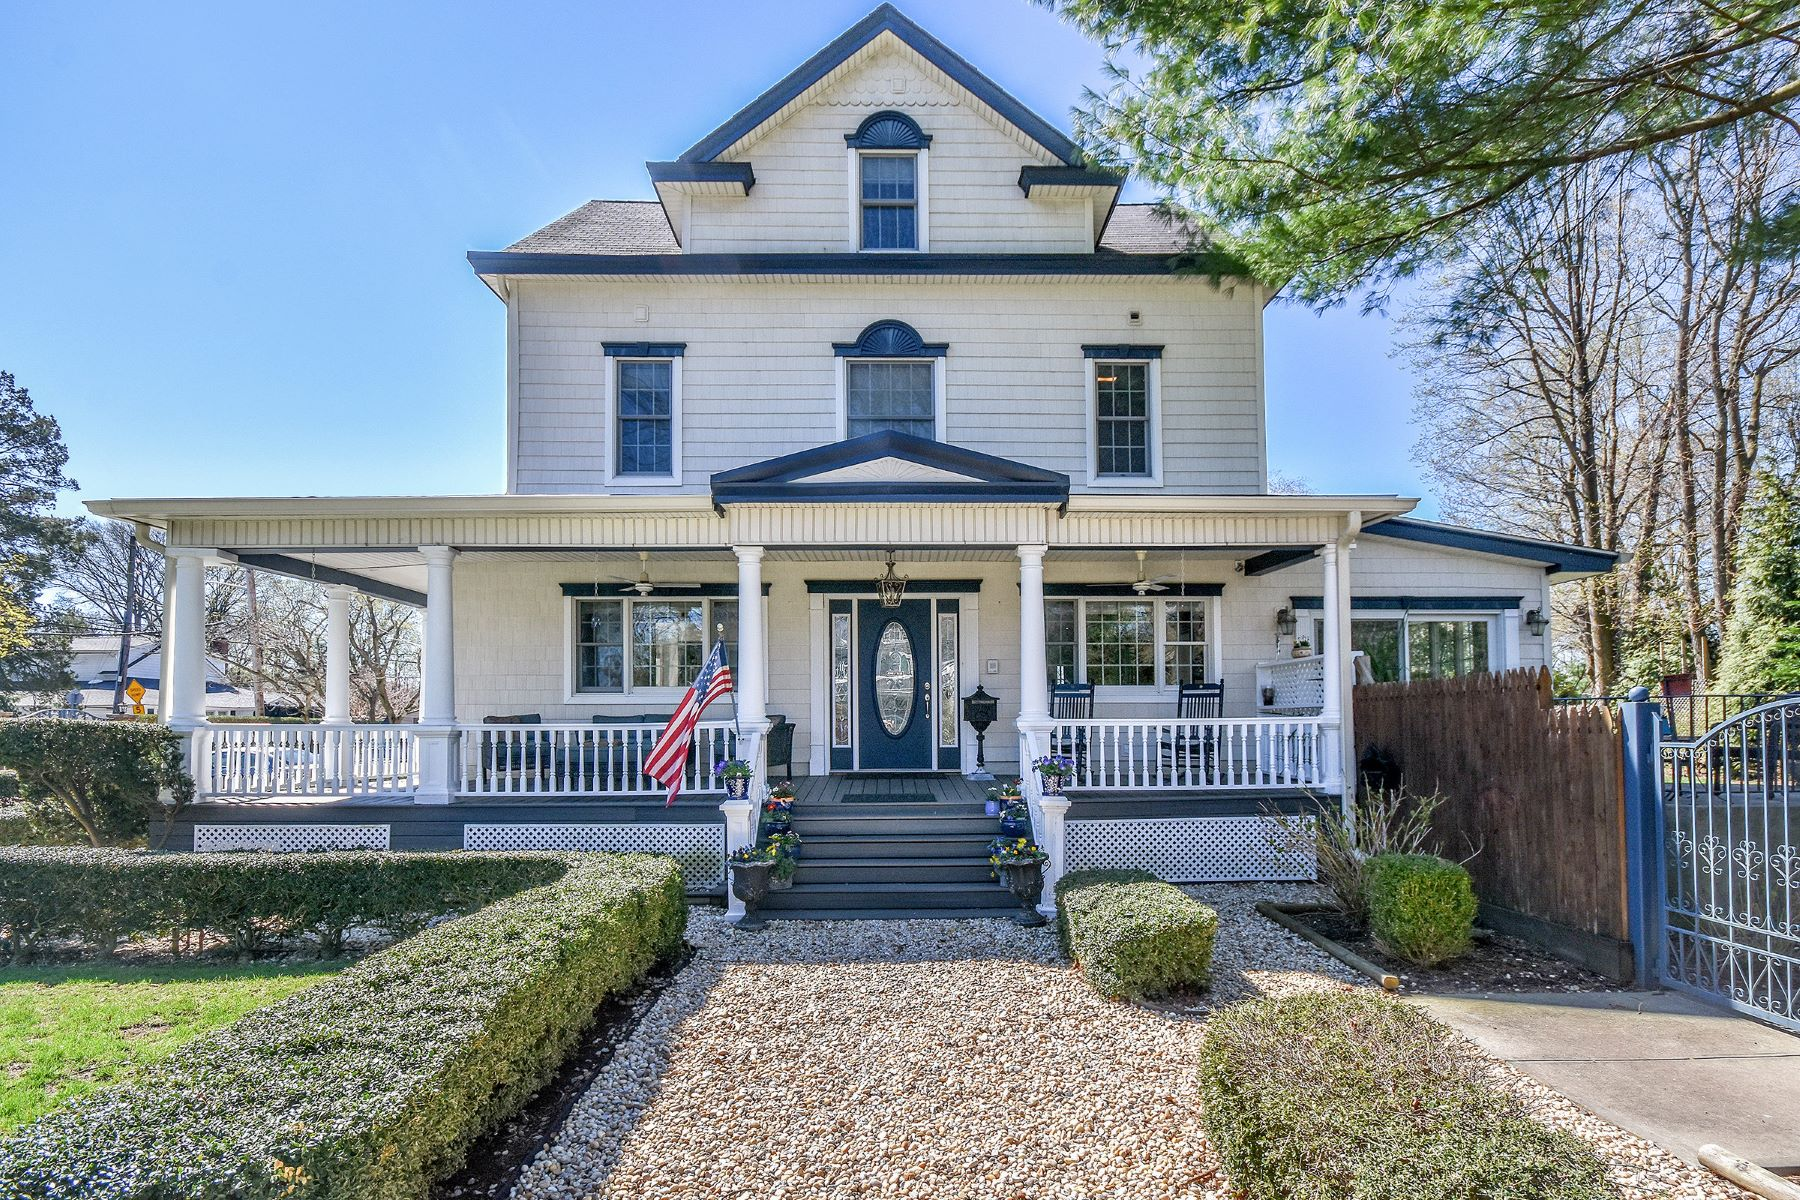 Single Family Homes for Active at Glen Cove 88 Highland Rd Glen Cove, New York 11542 United States